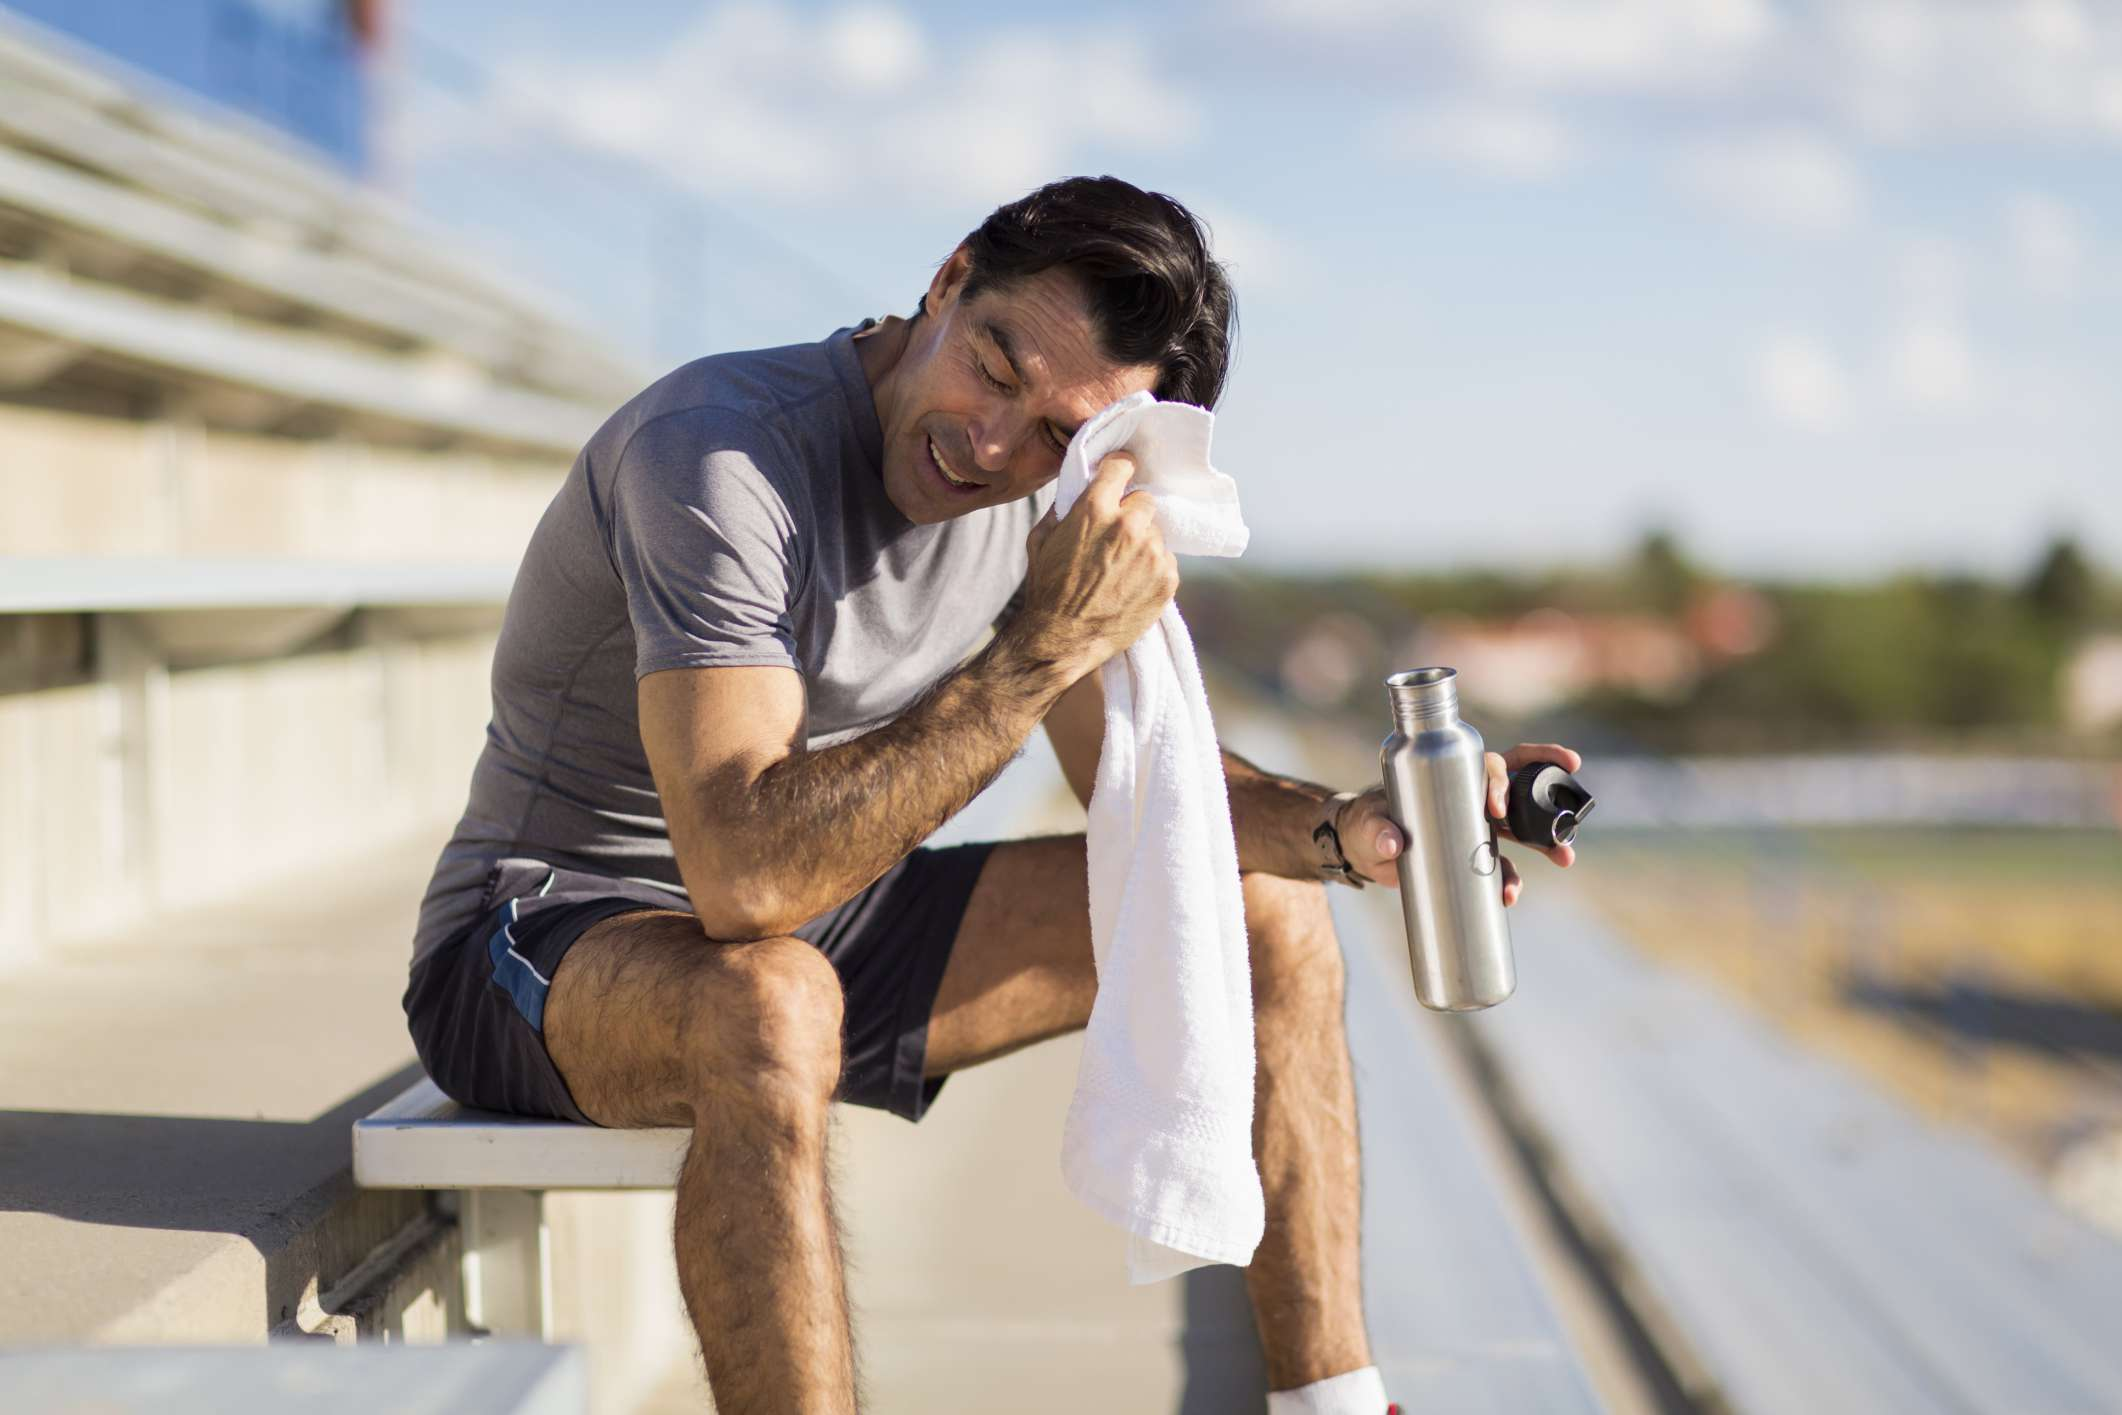 Man sitting on bleachers wiping his forehead with a towel